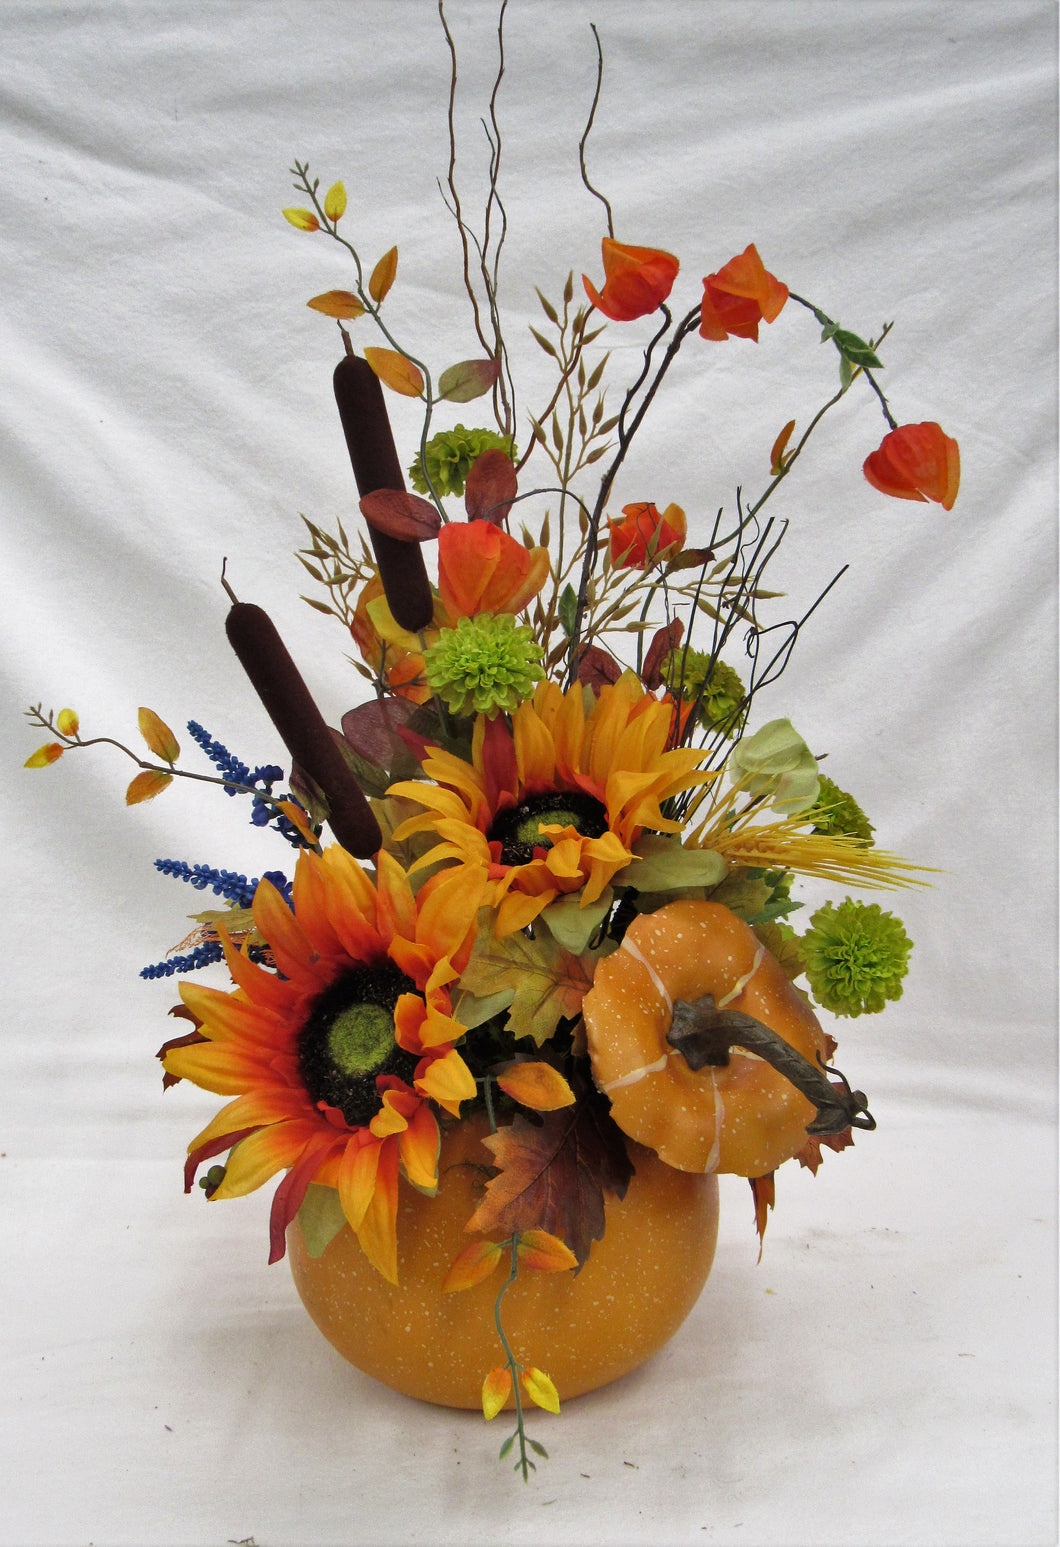 Orange/Gold Sunflower Fall Silk Floral Arrangement in Pumpkin/BH23 - April's Garden Wreath